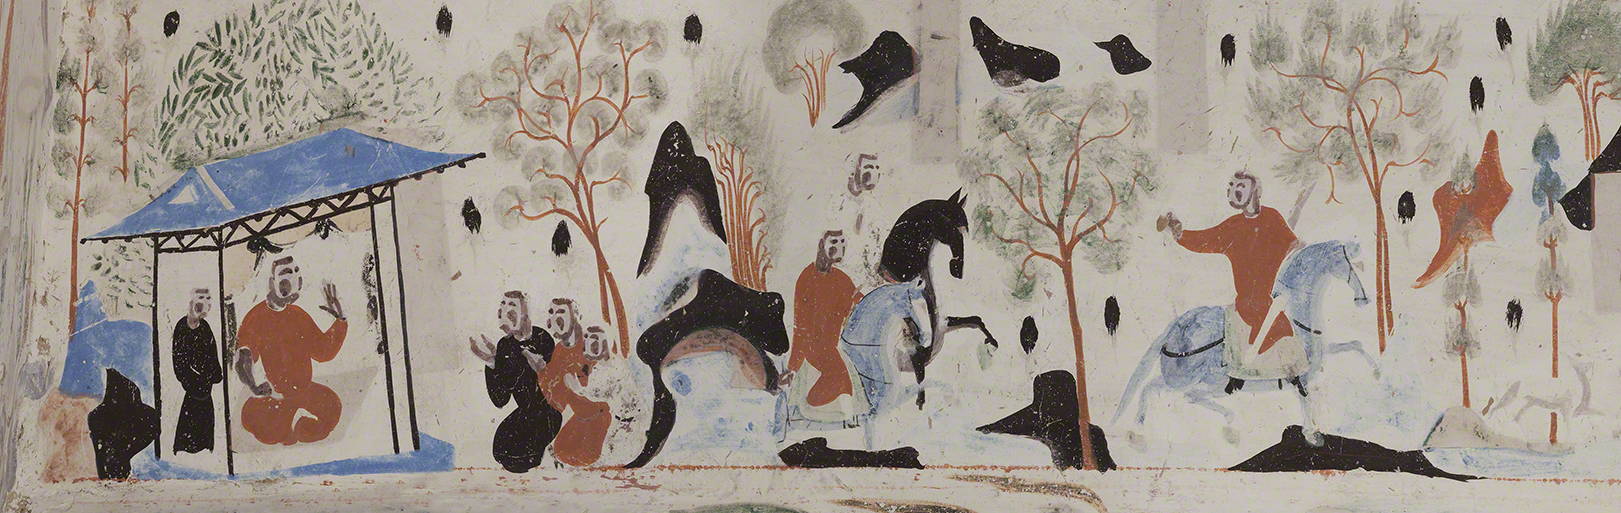 Detail of the king of Benares going hunting from the Syama jataka tale mural.   Mogao Cave 302. Sui, 581-618 CE. Dunhuang. Image courtesy of the Dunhuang Academy.